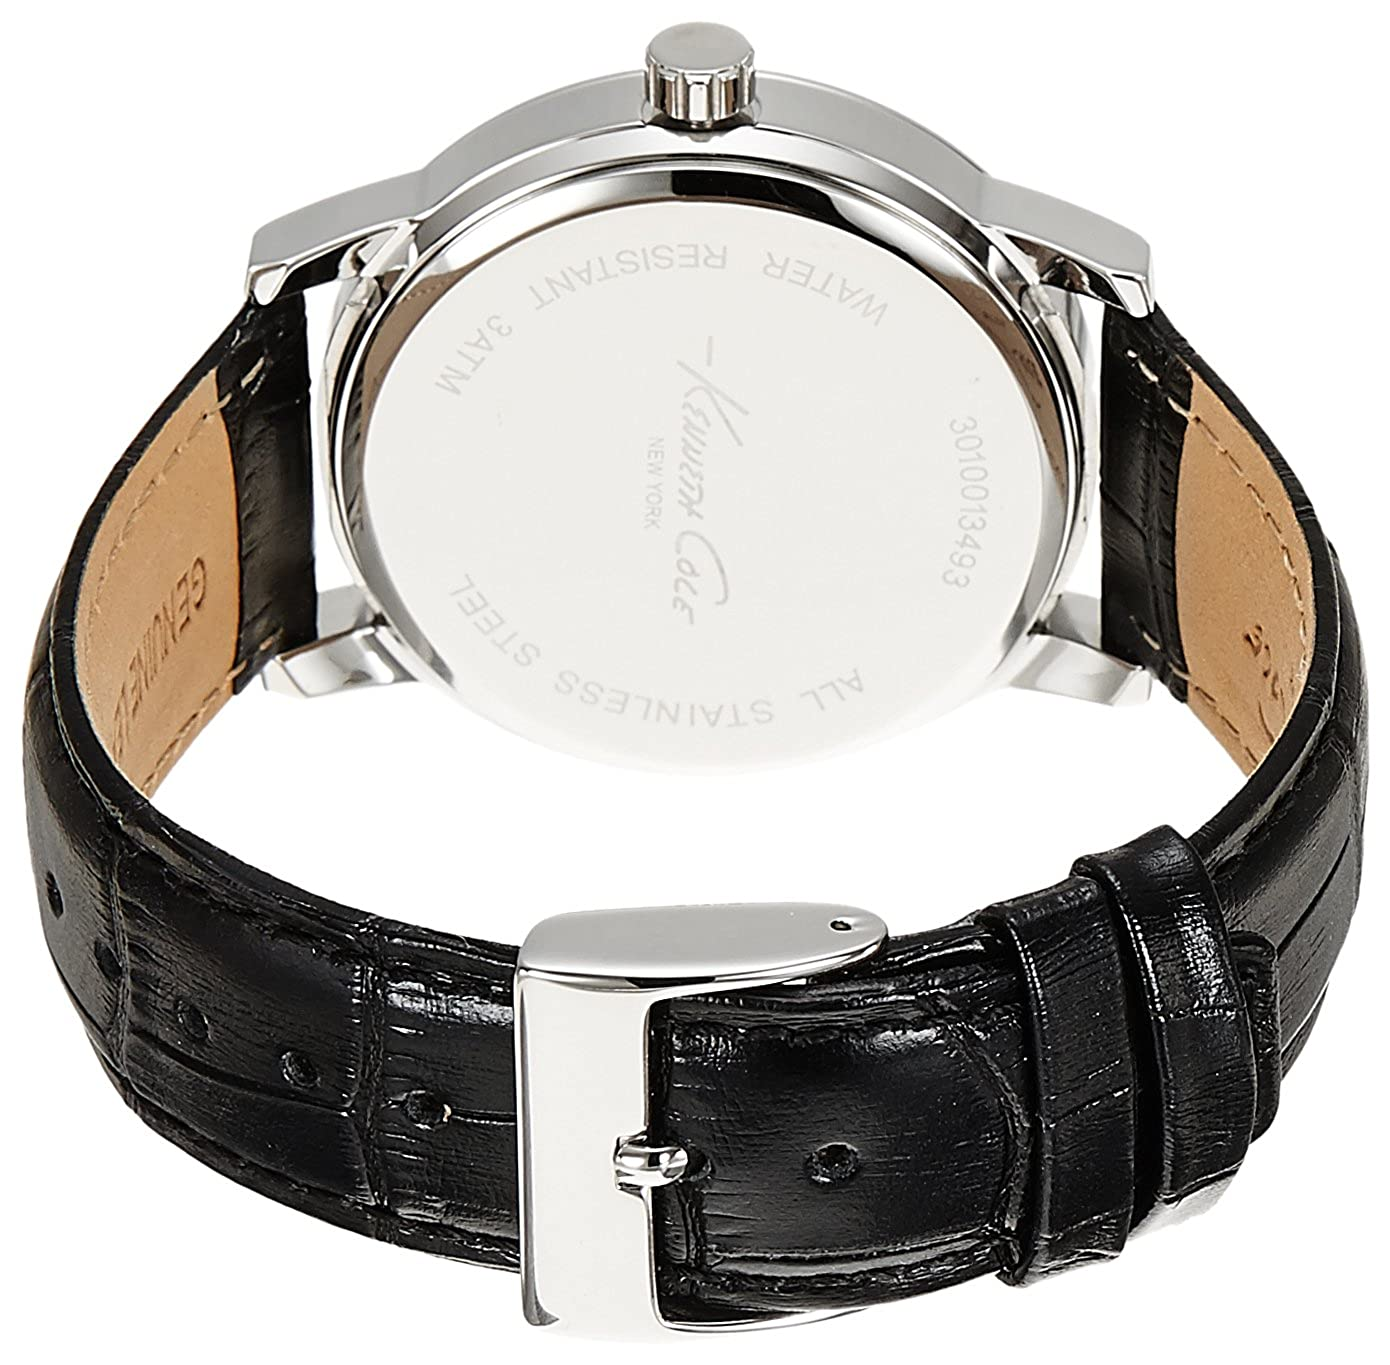 Kenneth Cole Watch New York Black Stainless Steel Case Leather Strap Emporio Armani Ar1828 Jam Tangan Pria Silver Amazoncom Mens Automatic And